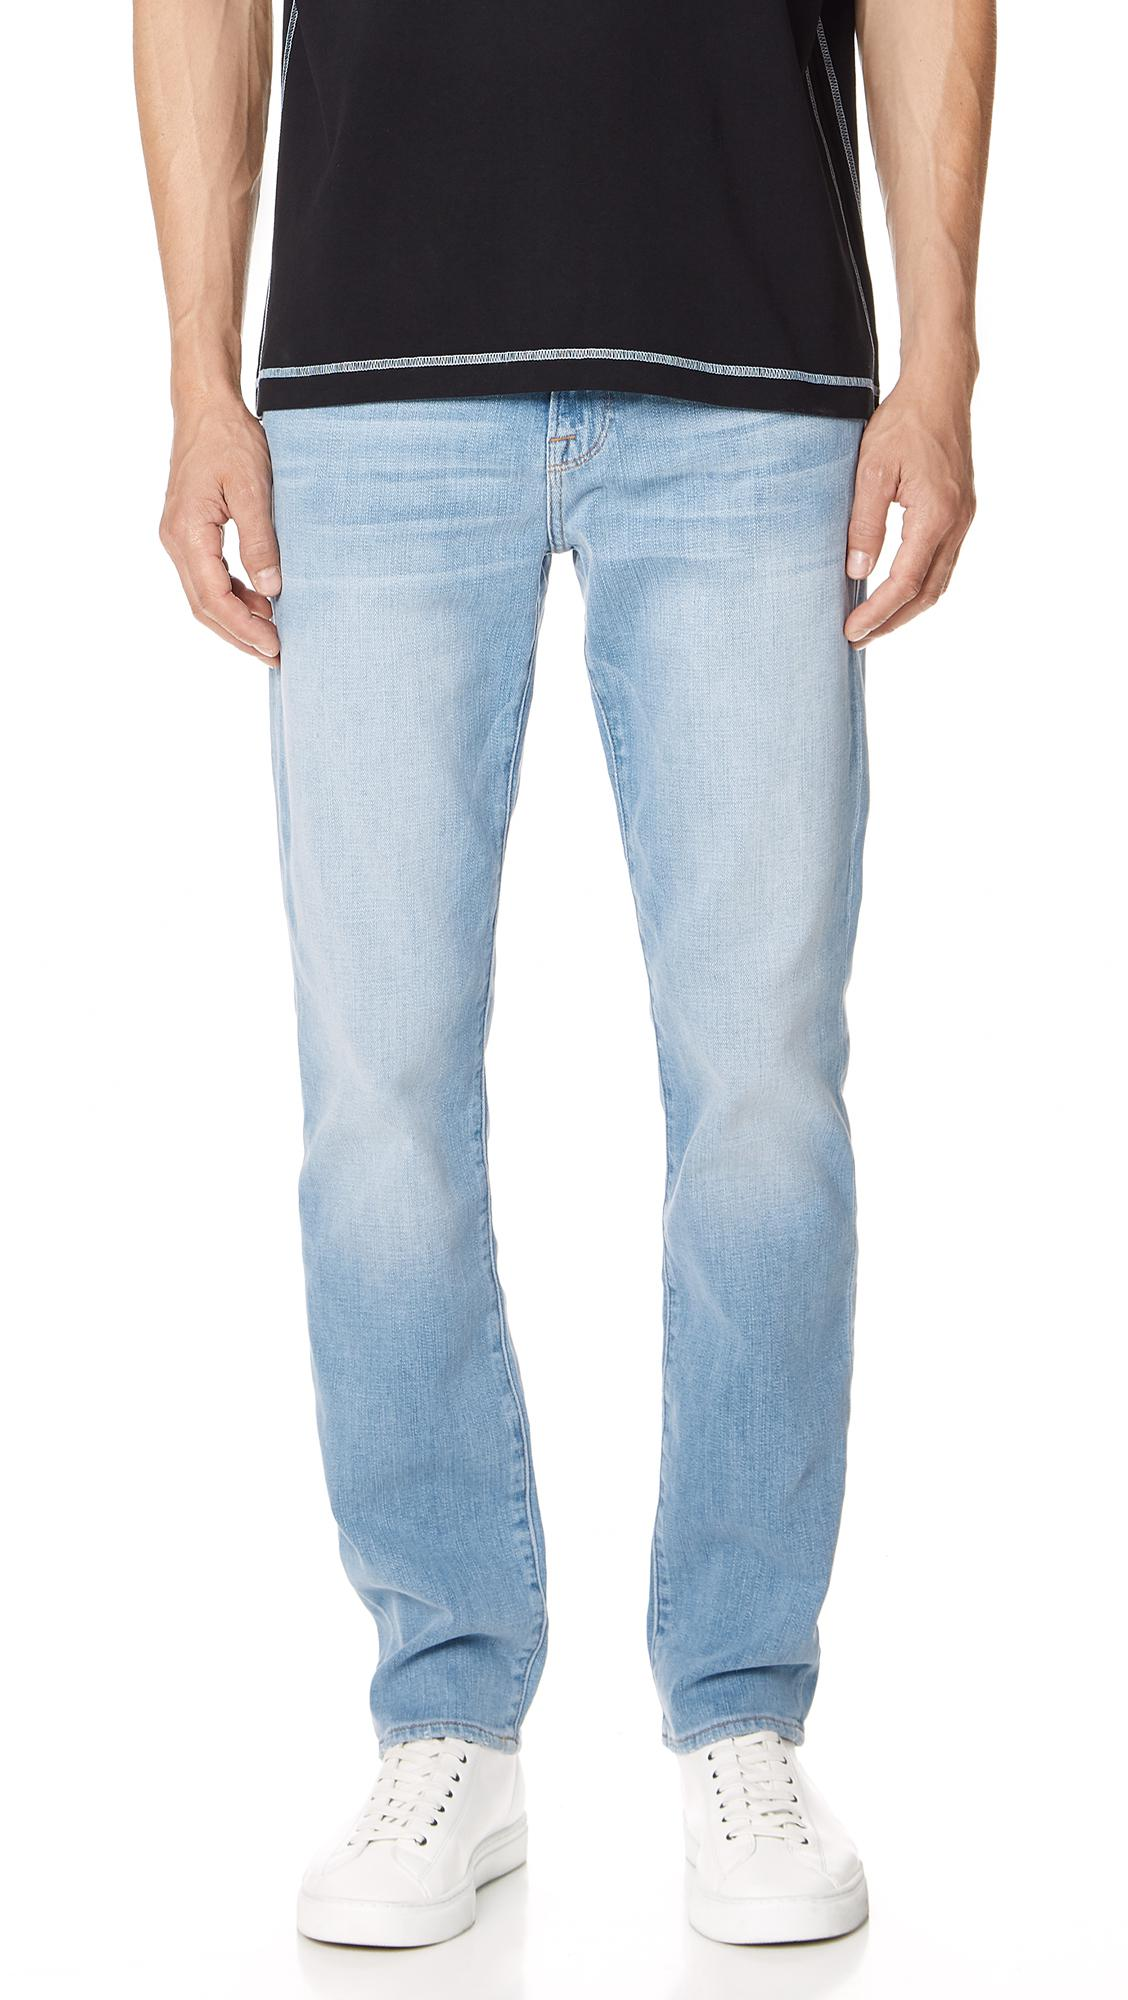 Great Deals Cheap Online FRAME L'Homme Straight Leg Jeans (Lake Lopez) Shop Outlet Store Sale Online Cheap Price Free Shipping N3Cnn9